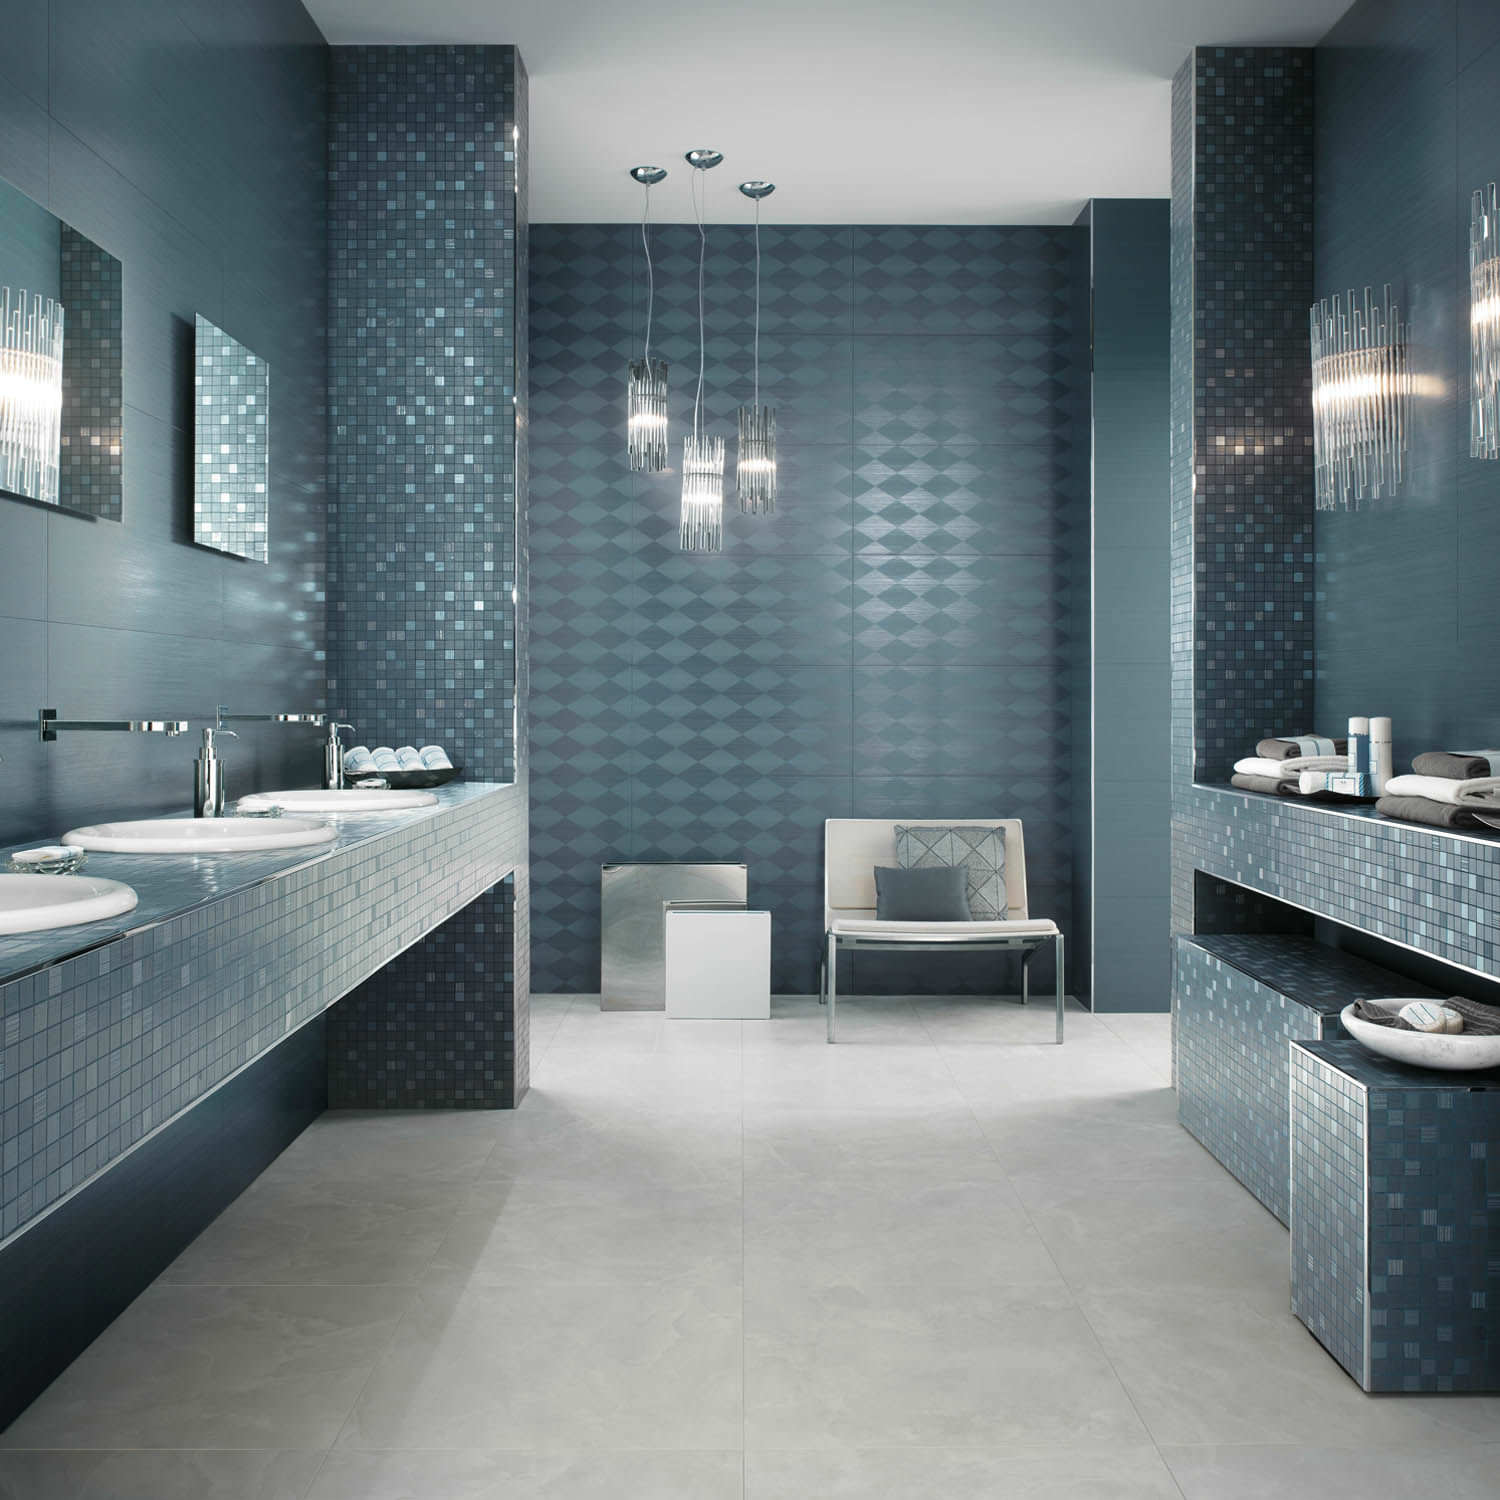 Magnificent Bathroom Renovation Archives How To Diy Blog Plumbtile Download Free Architecture Designs Embacsunscenecom